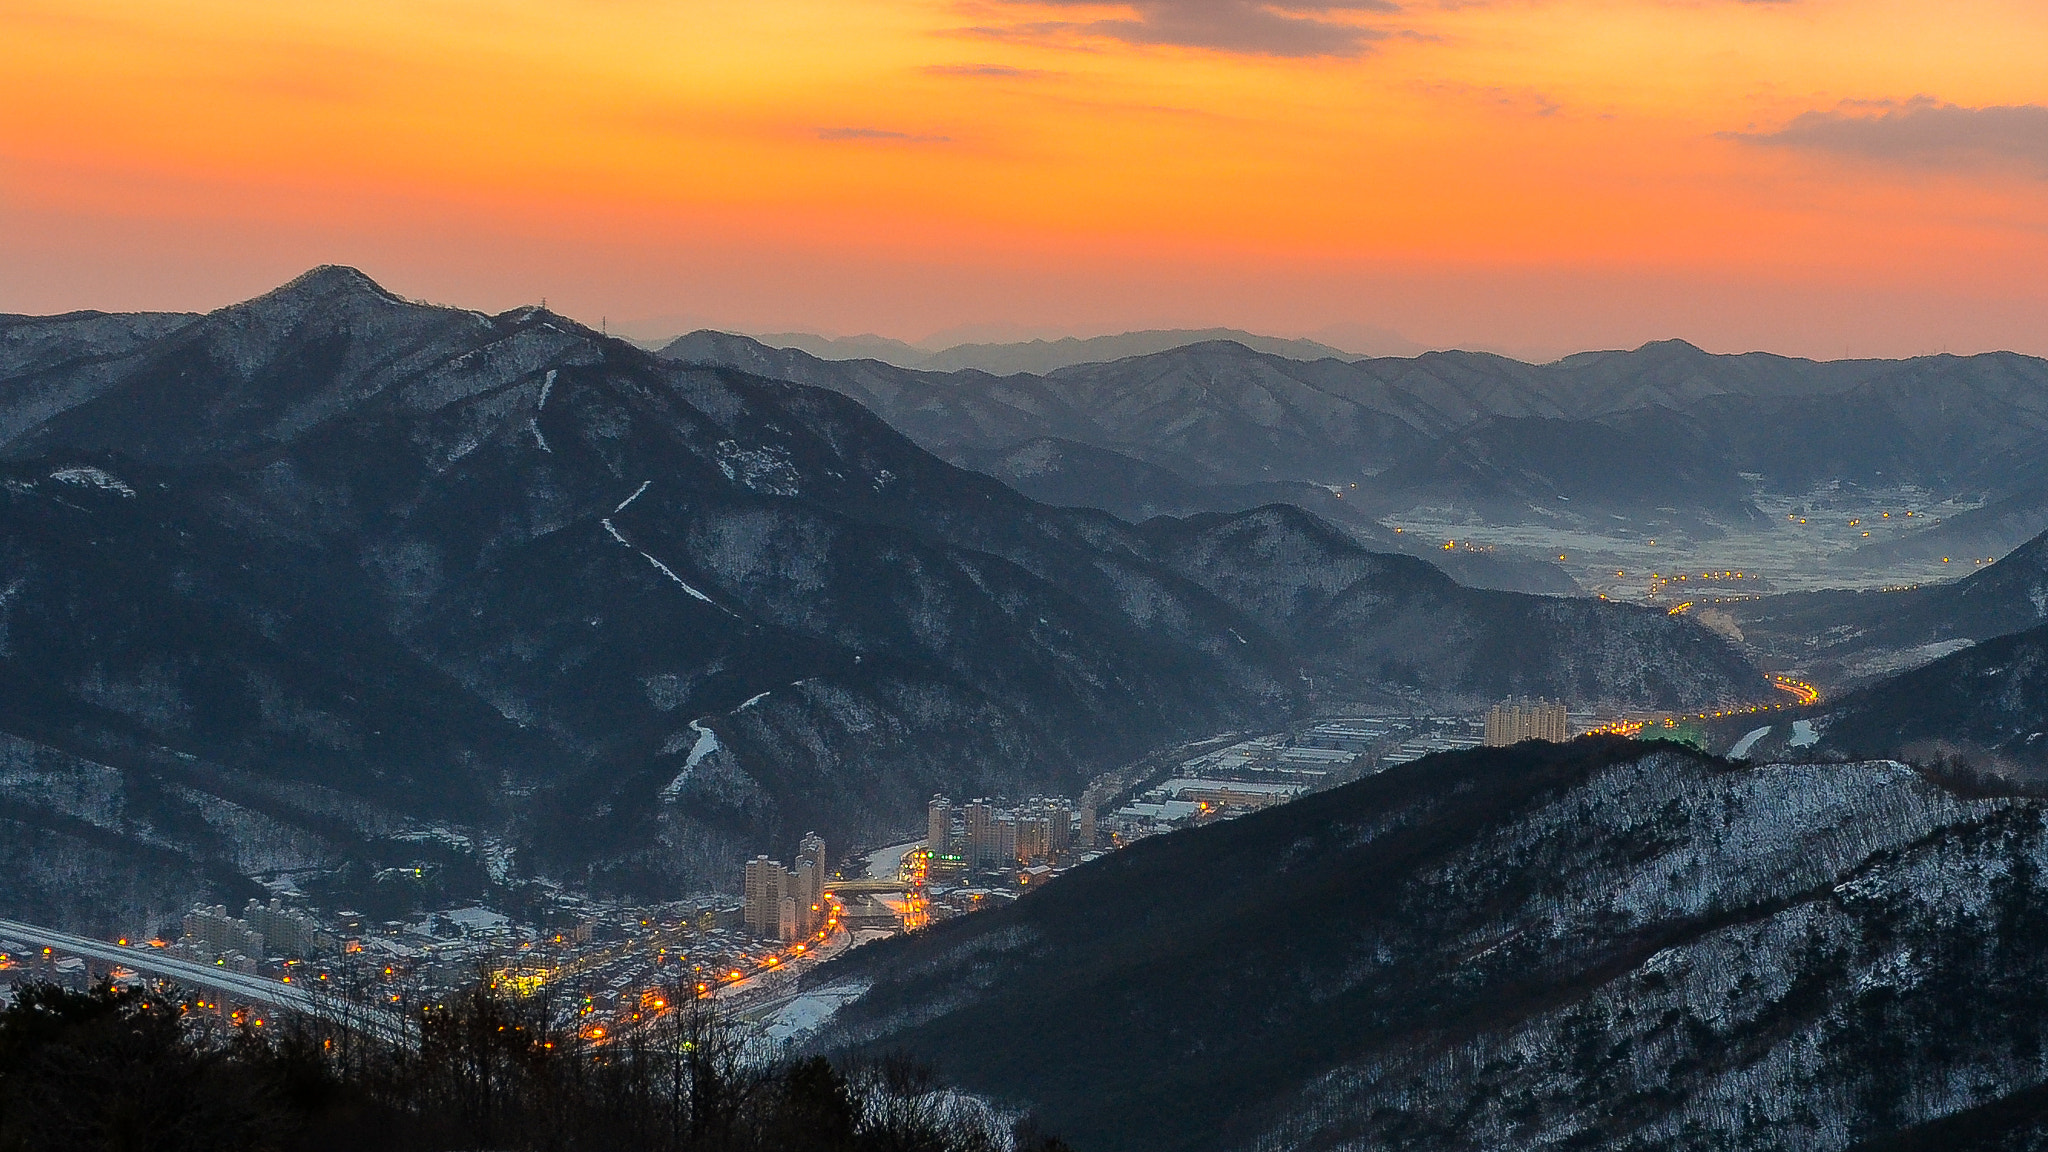 Photograph First Sunrise of 2013 in Daegu by Brad Tombers on 500px